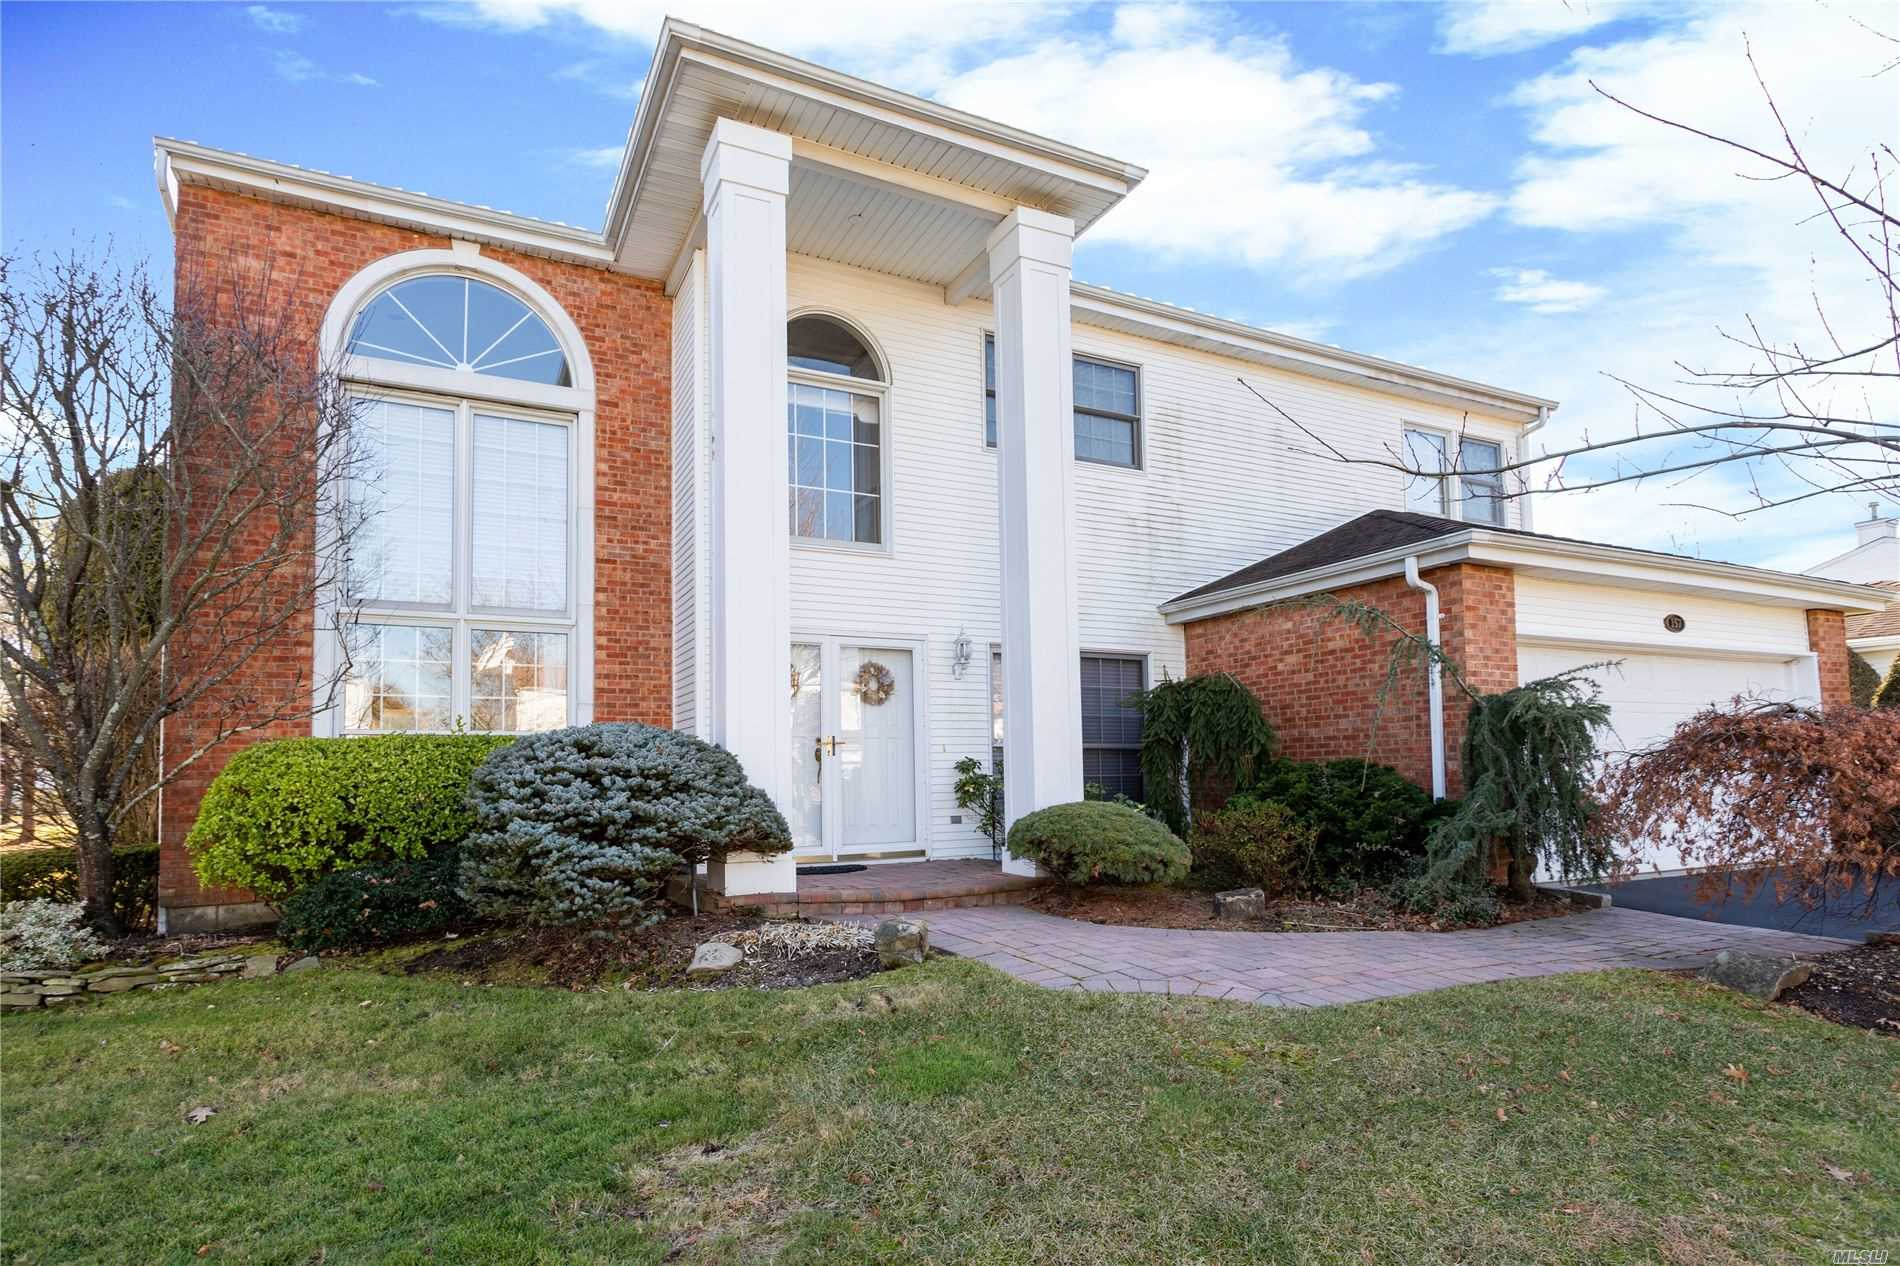 Property for sale at 157 Country Club Drive, Commack NY 11725, Commack,  New York 11725